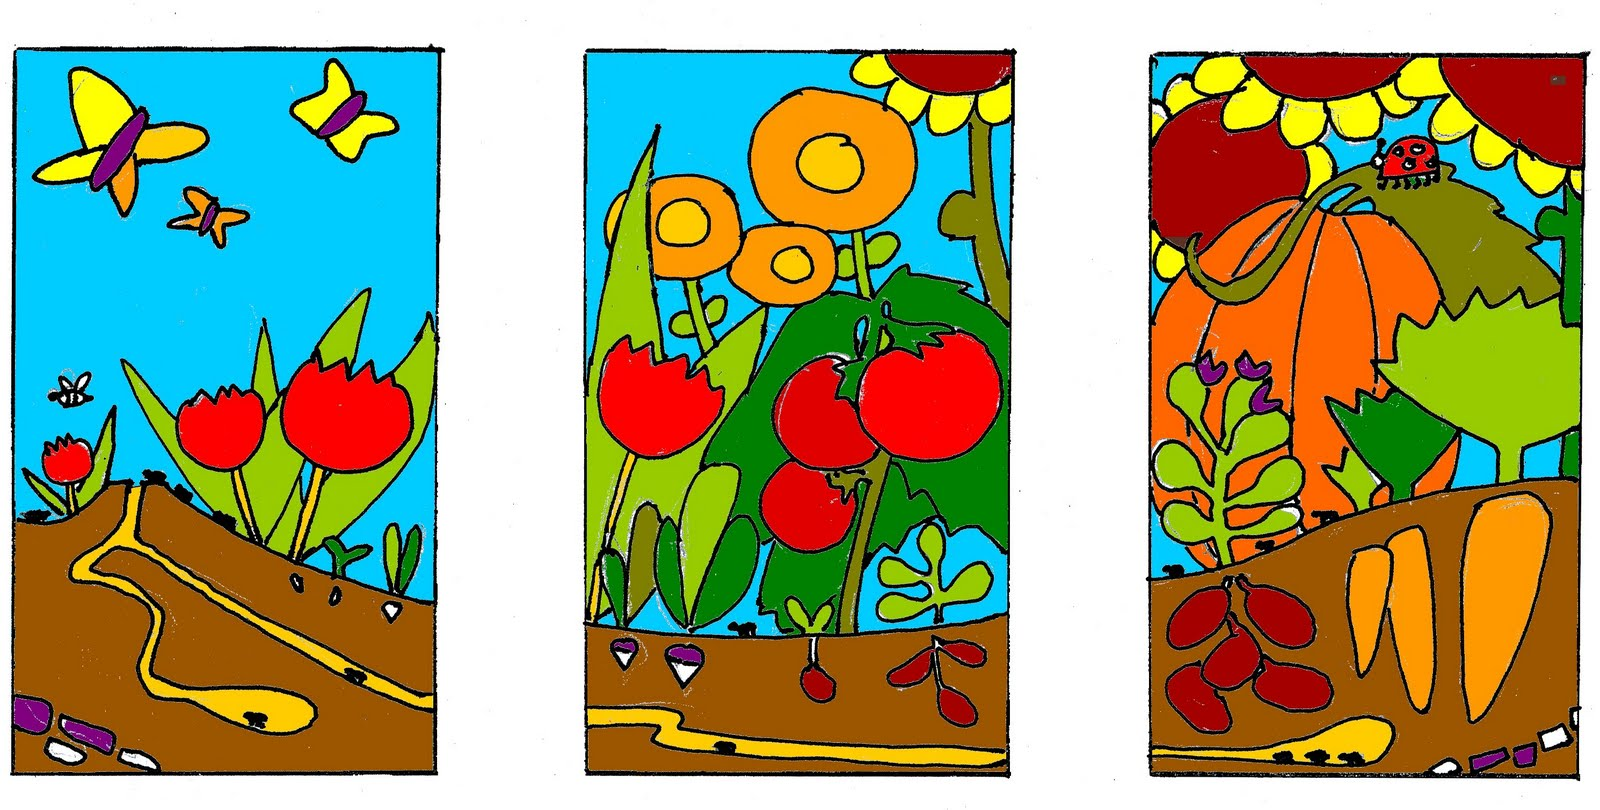 Garden pictures for kids to color - Garden Drawing For Kids Info